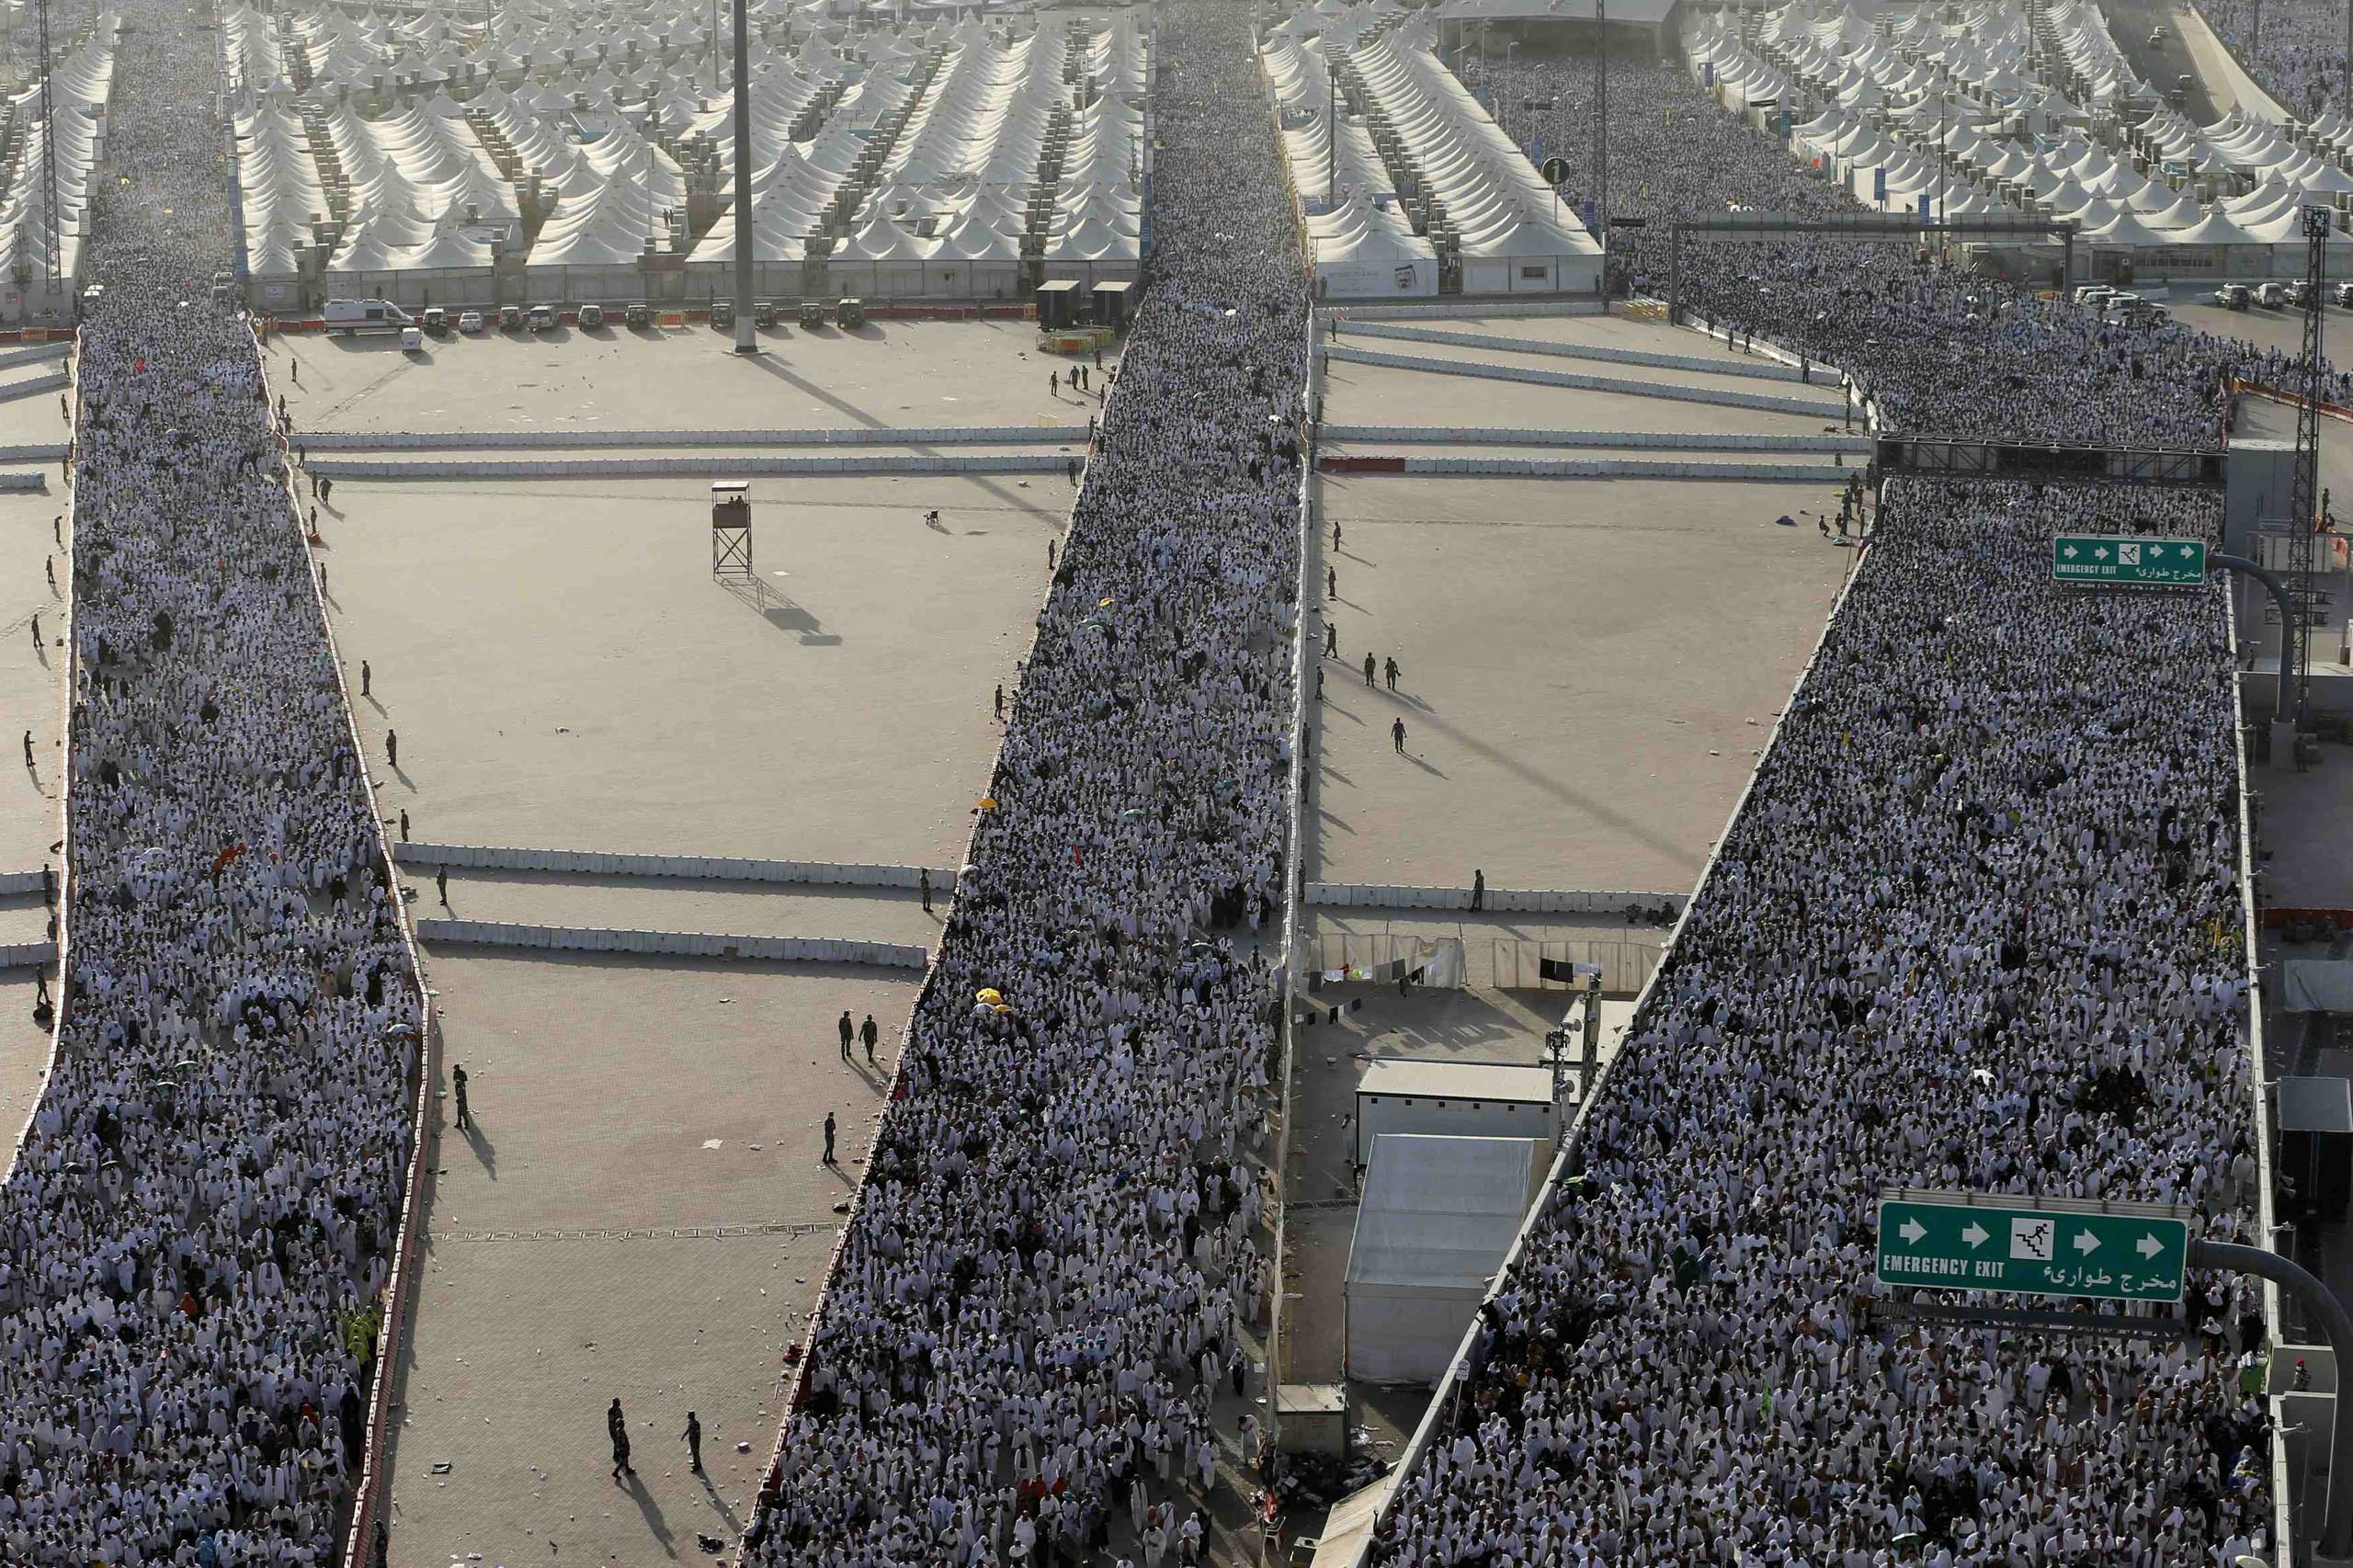 Oct. 4, 2014. Muslim pilgrims arrive to cast stones at pillars symbolizing Satan, during the annual hajj pilgrimage, on the first day of Eid al-Adha in Mina, near the holy city of Mecca.